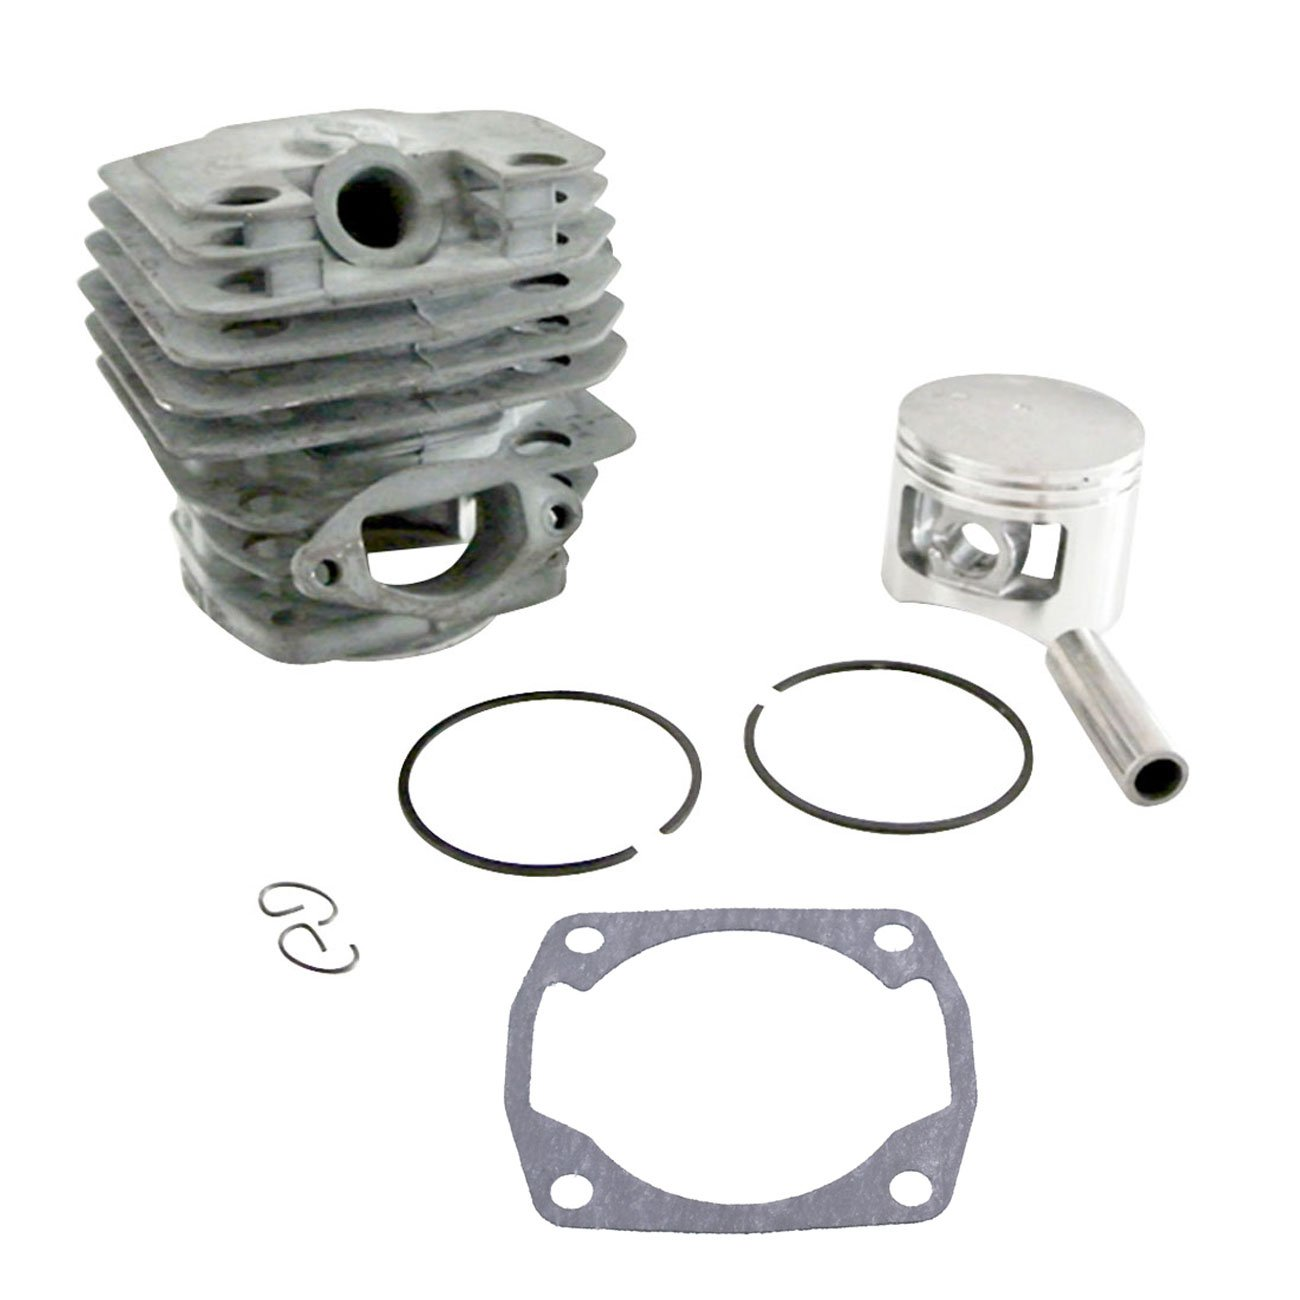 JRL 45mm Cylinder & Piston Kit Fit 52cc Chinese 5200 Chainsaw Tarus Timbertech Huang Machinery